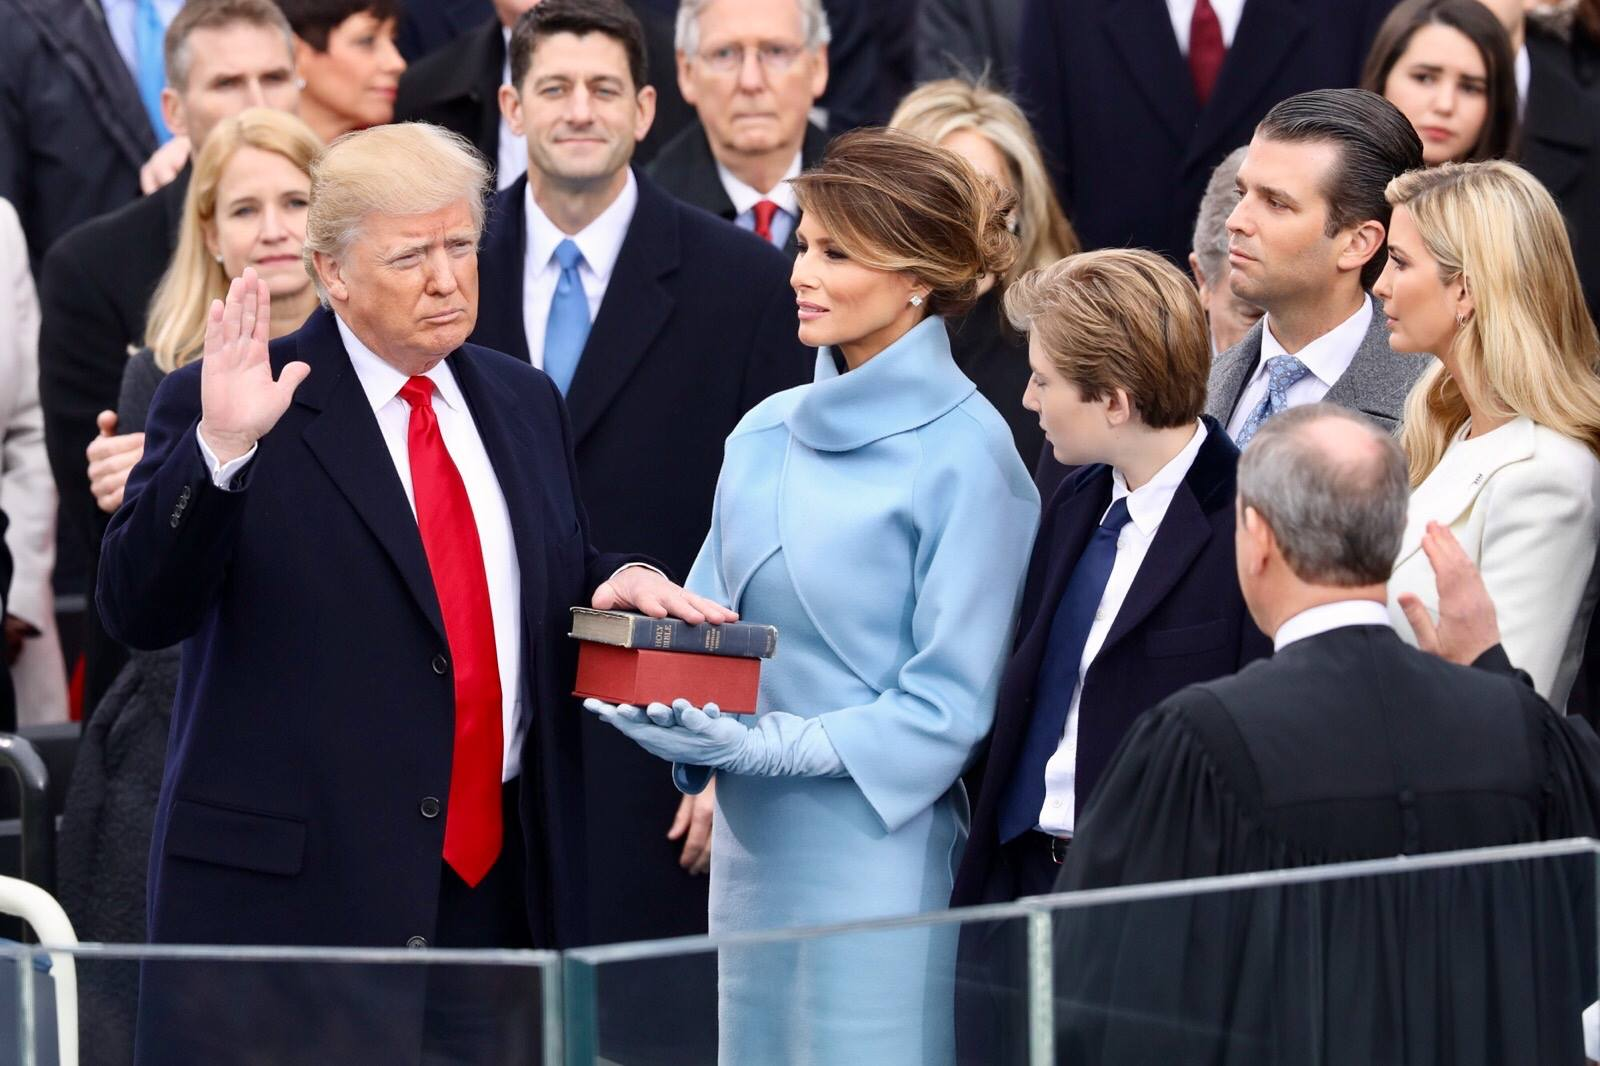 Donald Trump takes the oath of office, hand on two Bibles, with wife Melania, son Barron, and a crowd of others around him.